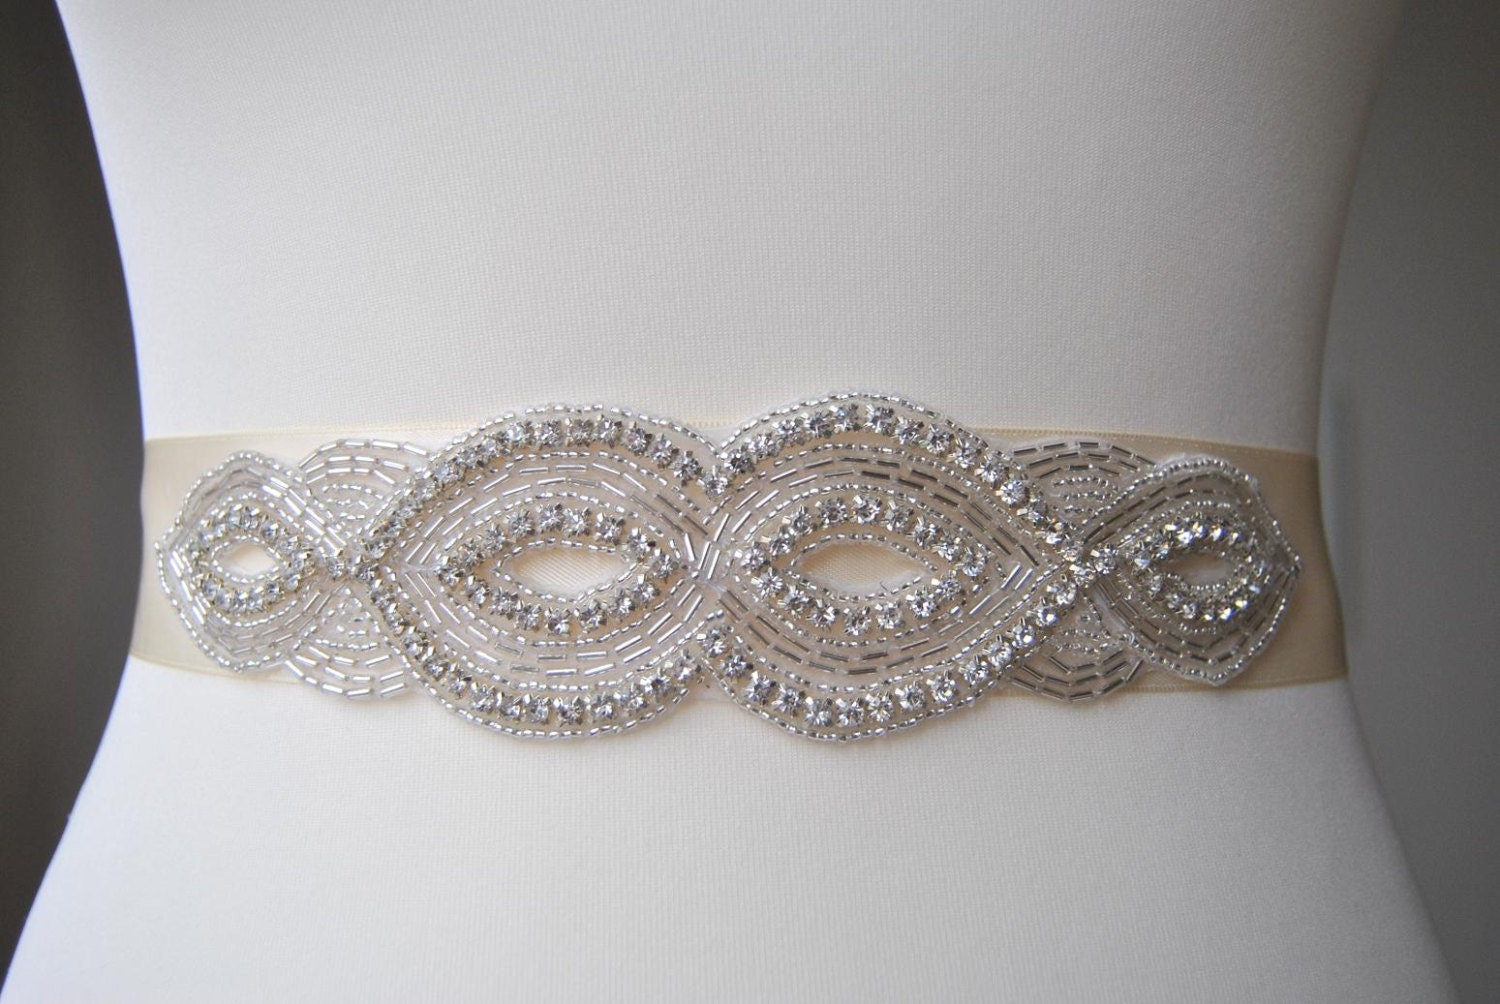 Wedding Dress Sash Belt, Luxury Crystal Bridal Sash, Rhinestone Sash,  Rhinestone Bridal Bridesmaid Sash Belt, Wedding dress sash